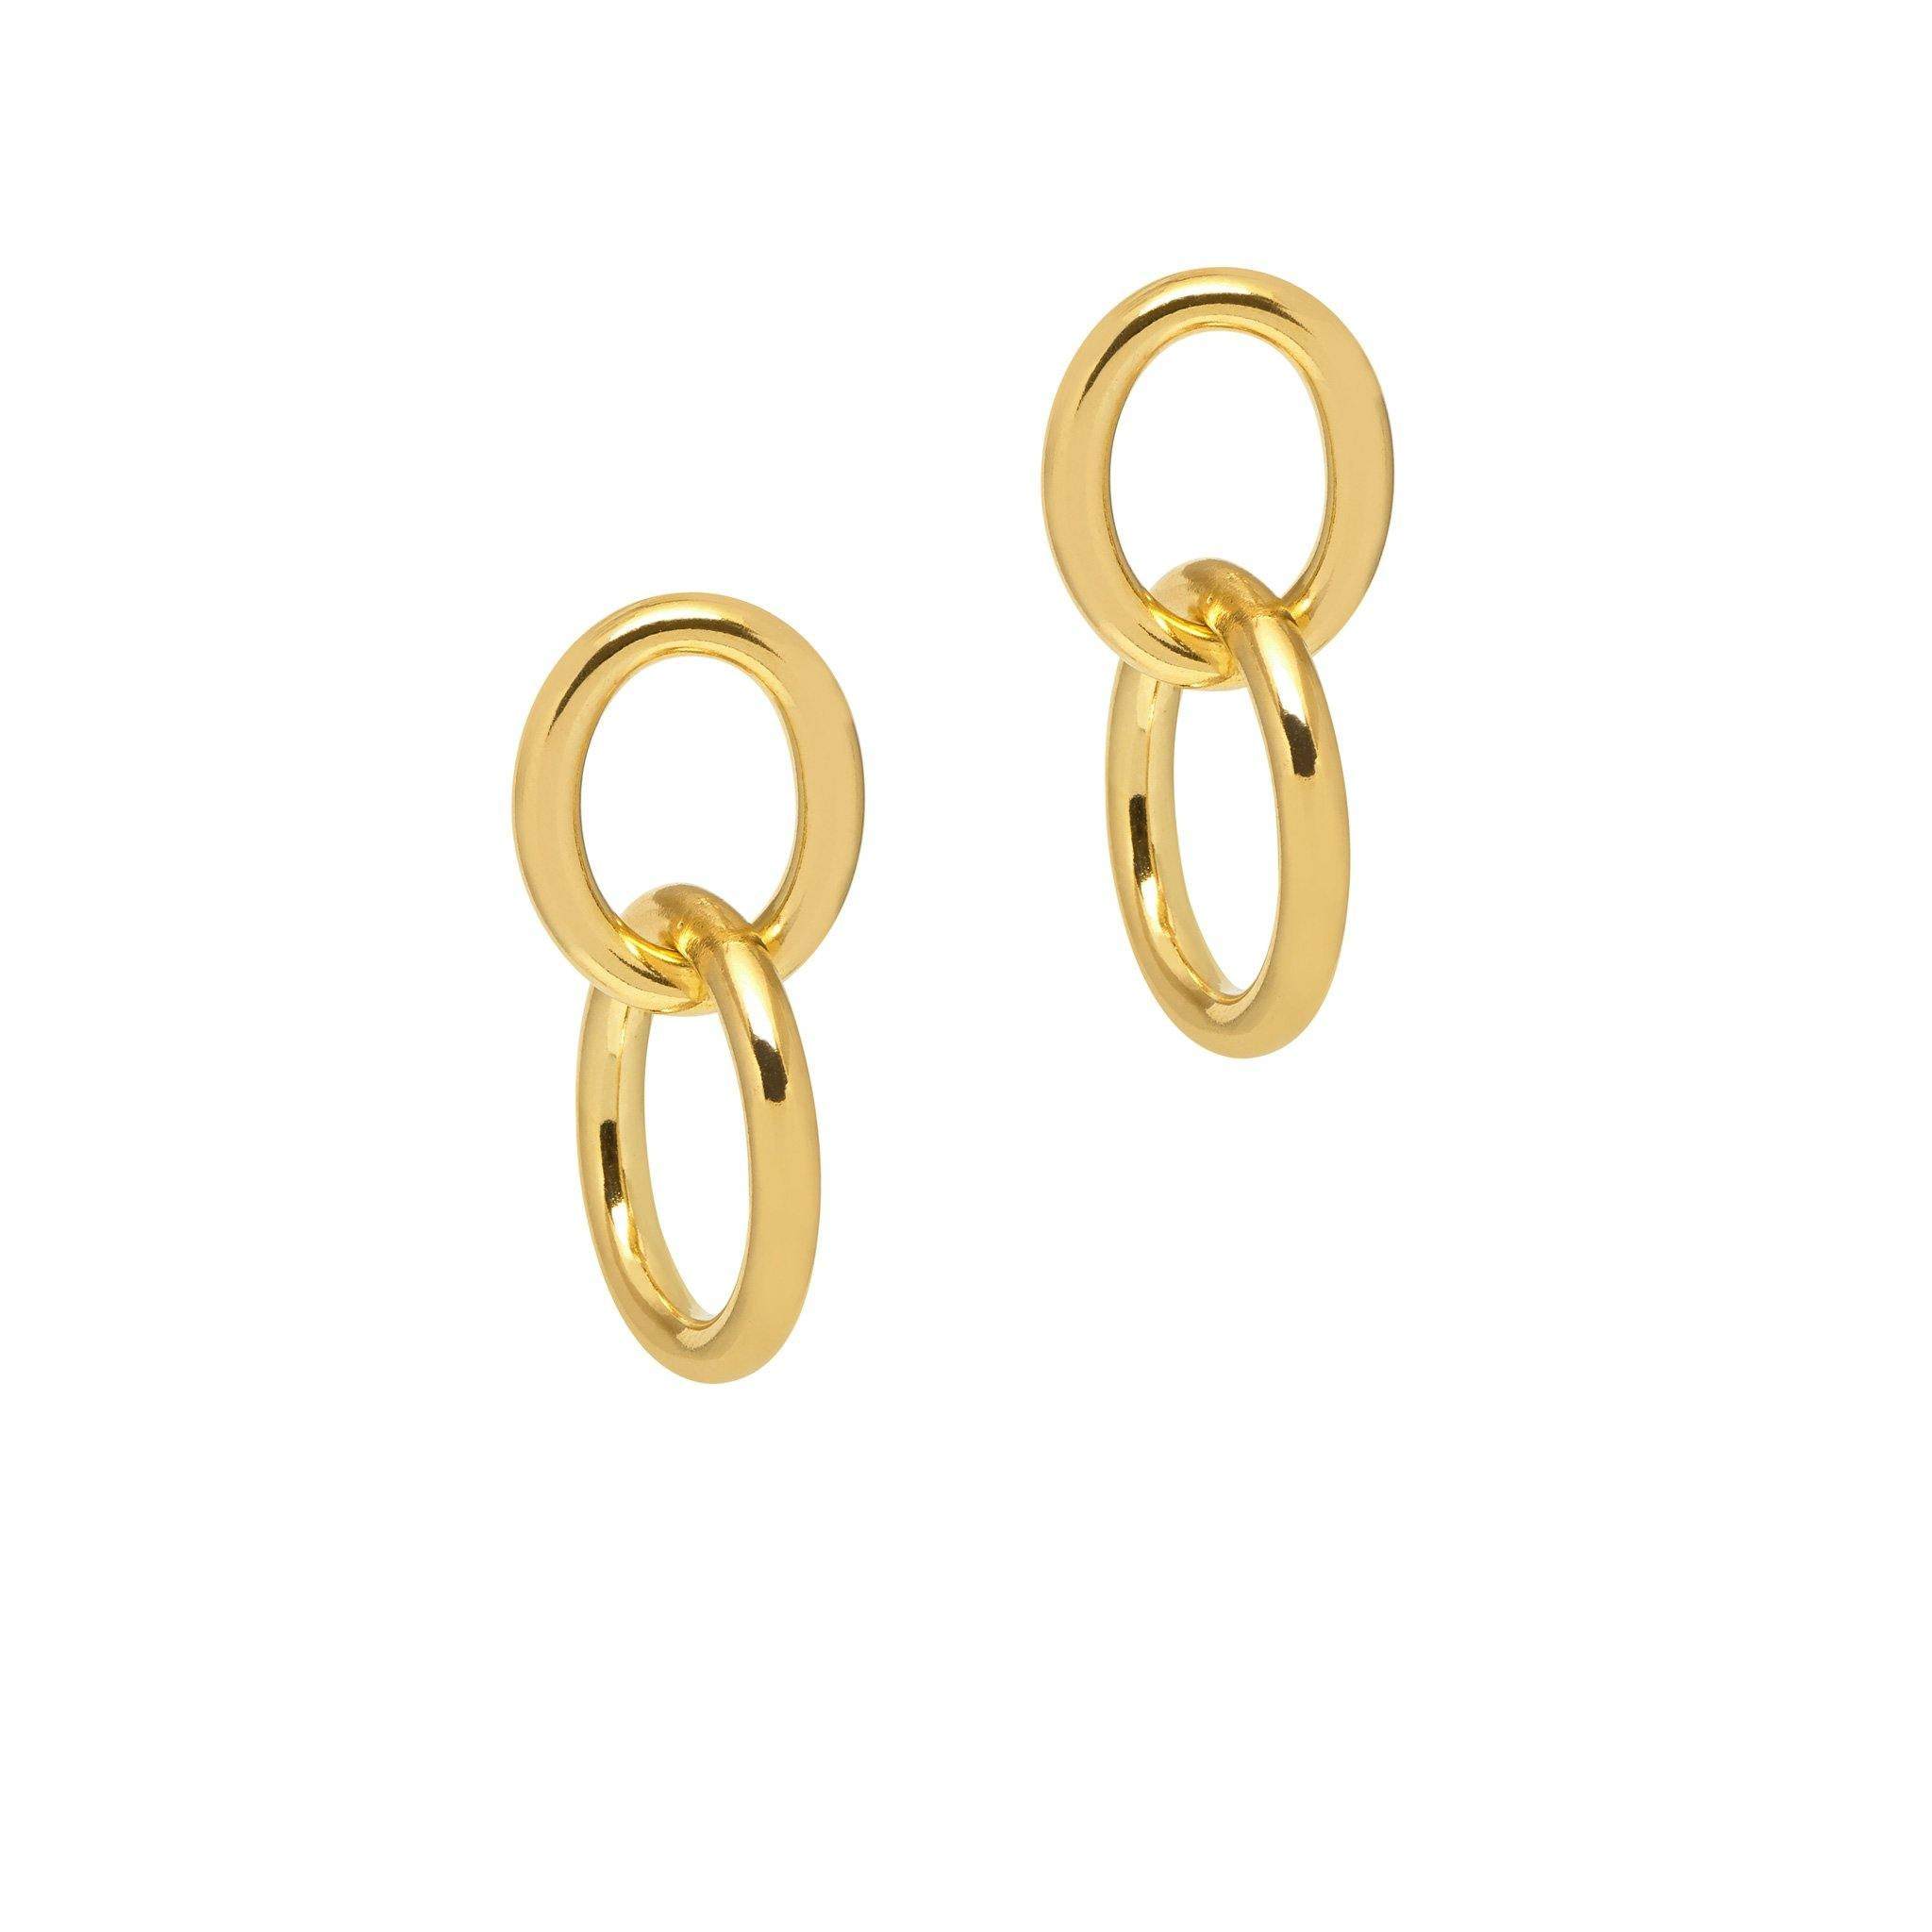 La CATENA Double Loops Gold - SALE - The Hoop Station 925 Sterling Silver Hoop Earrings Gold Huggies